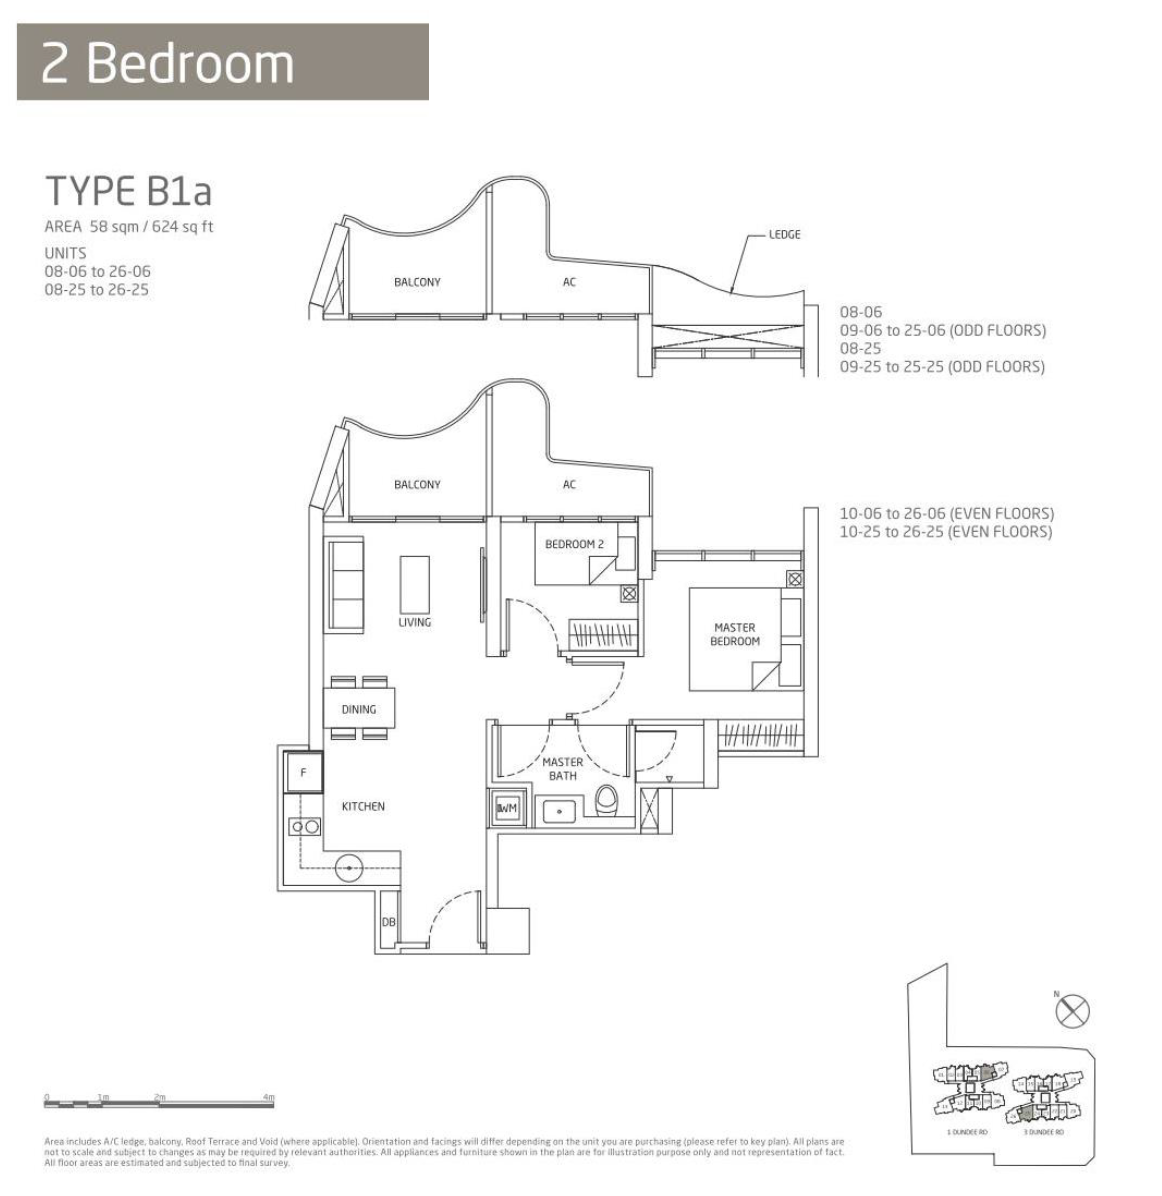 Queens Peak 2 bedroom floor plan type B1a queens peak floor plan showflat hotline 61008935 showroom ke70 wiring diagram pdf at bakdesigns.co